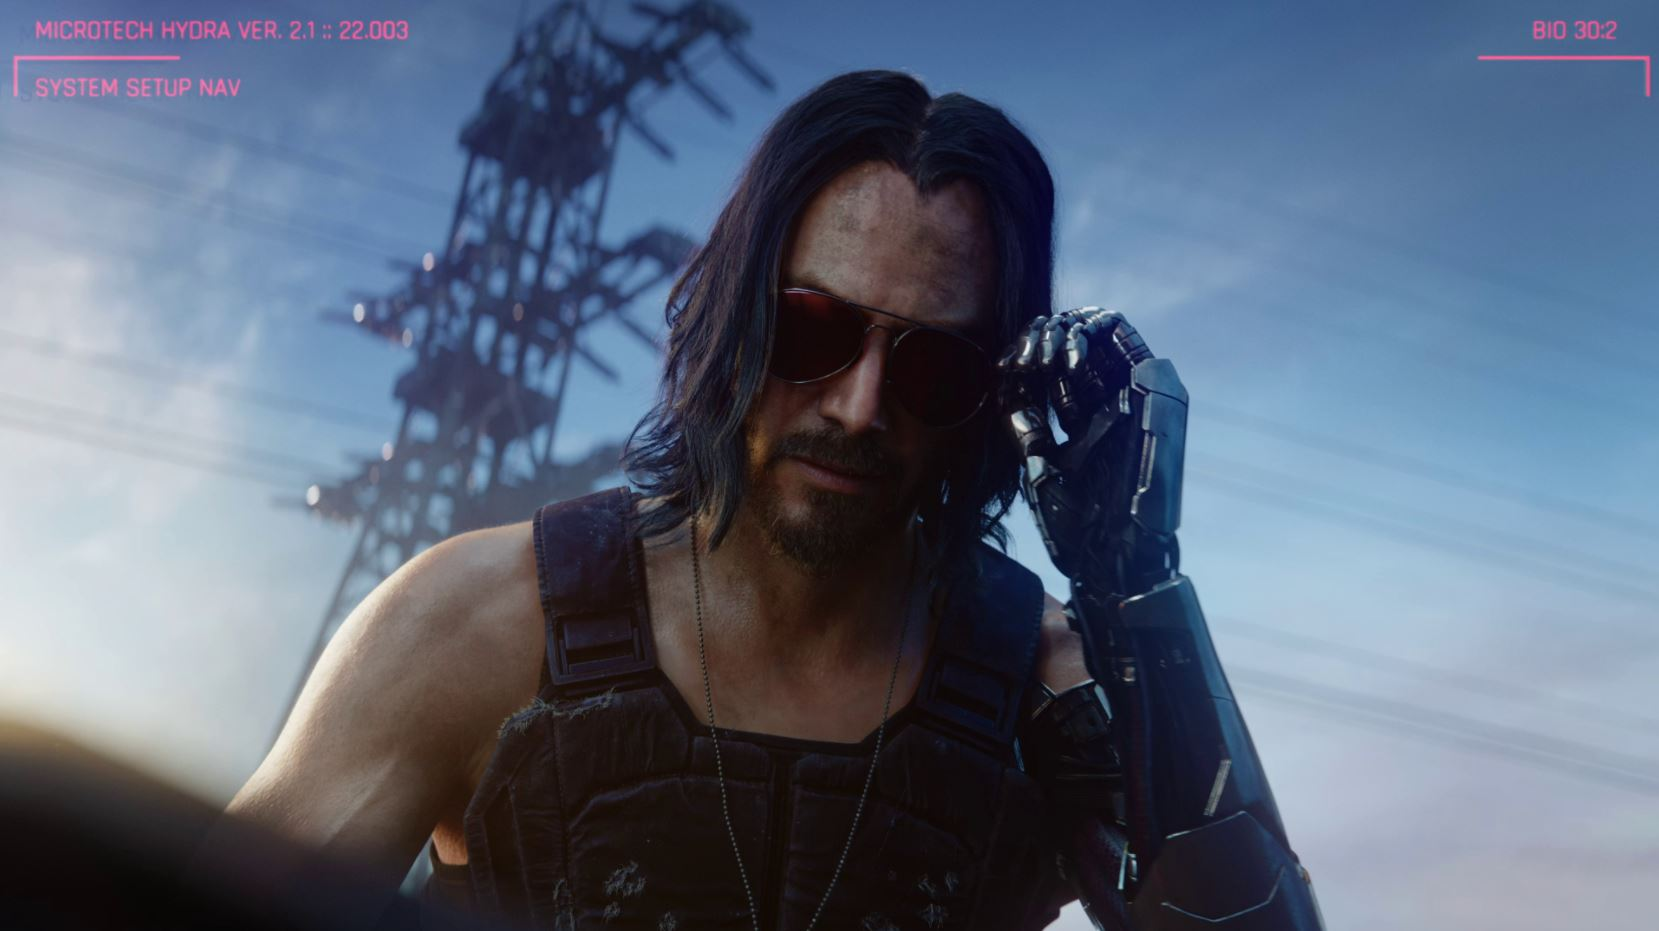 cyberpunk-2077-reportedly-had-the-biggest-digital-launch-for-a-game-ever